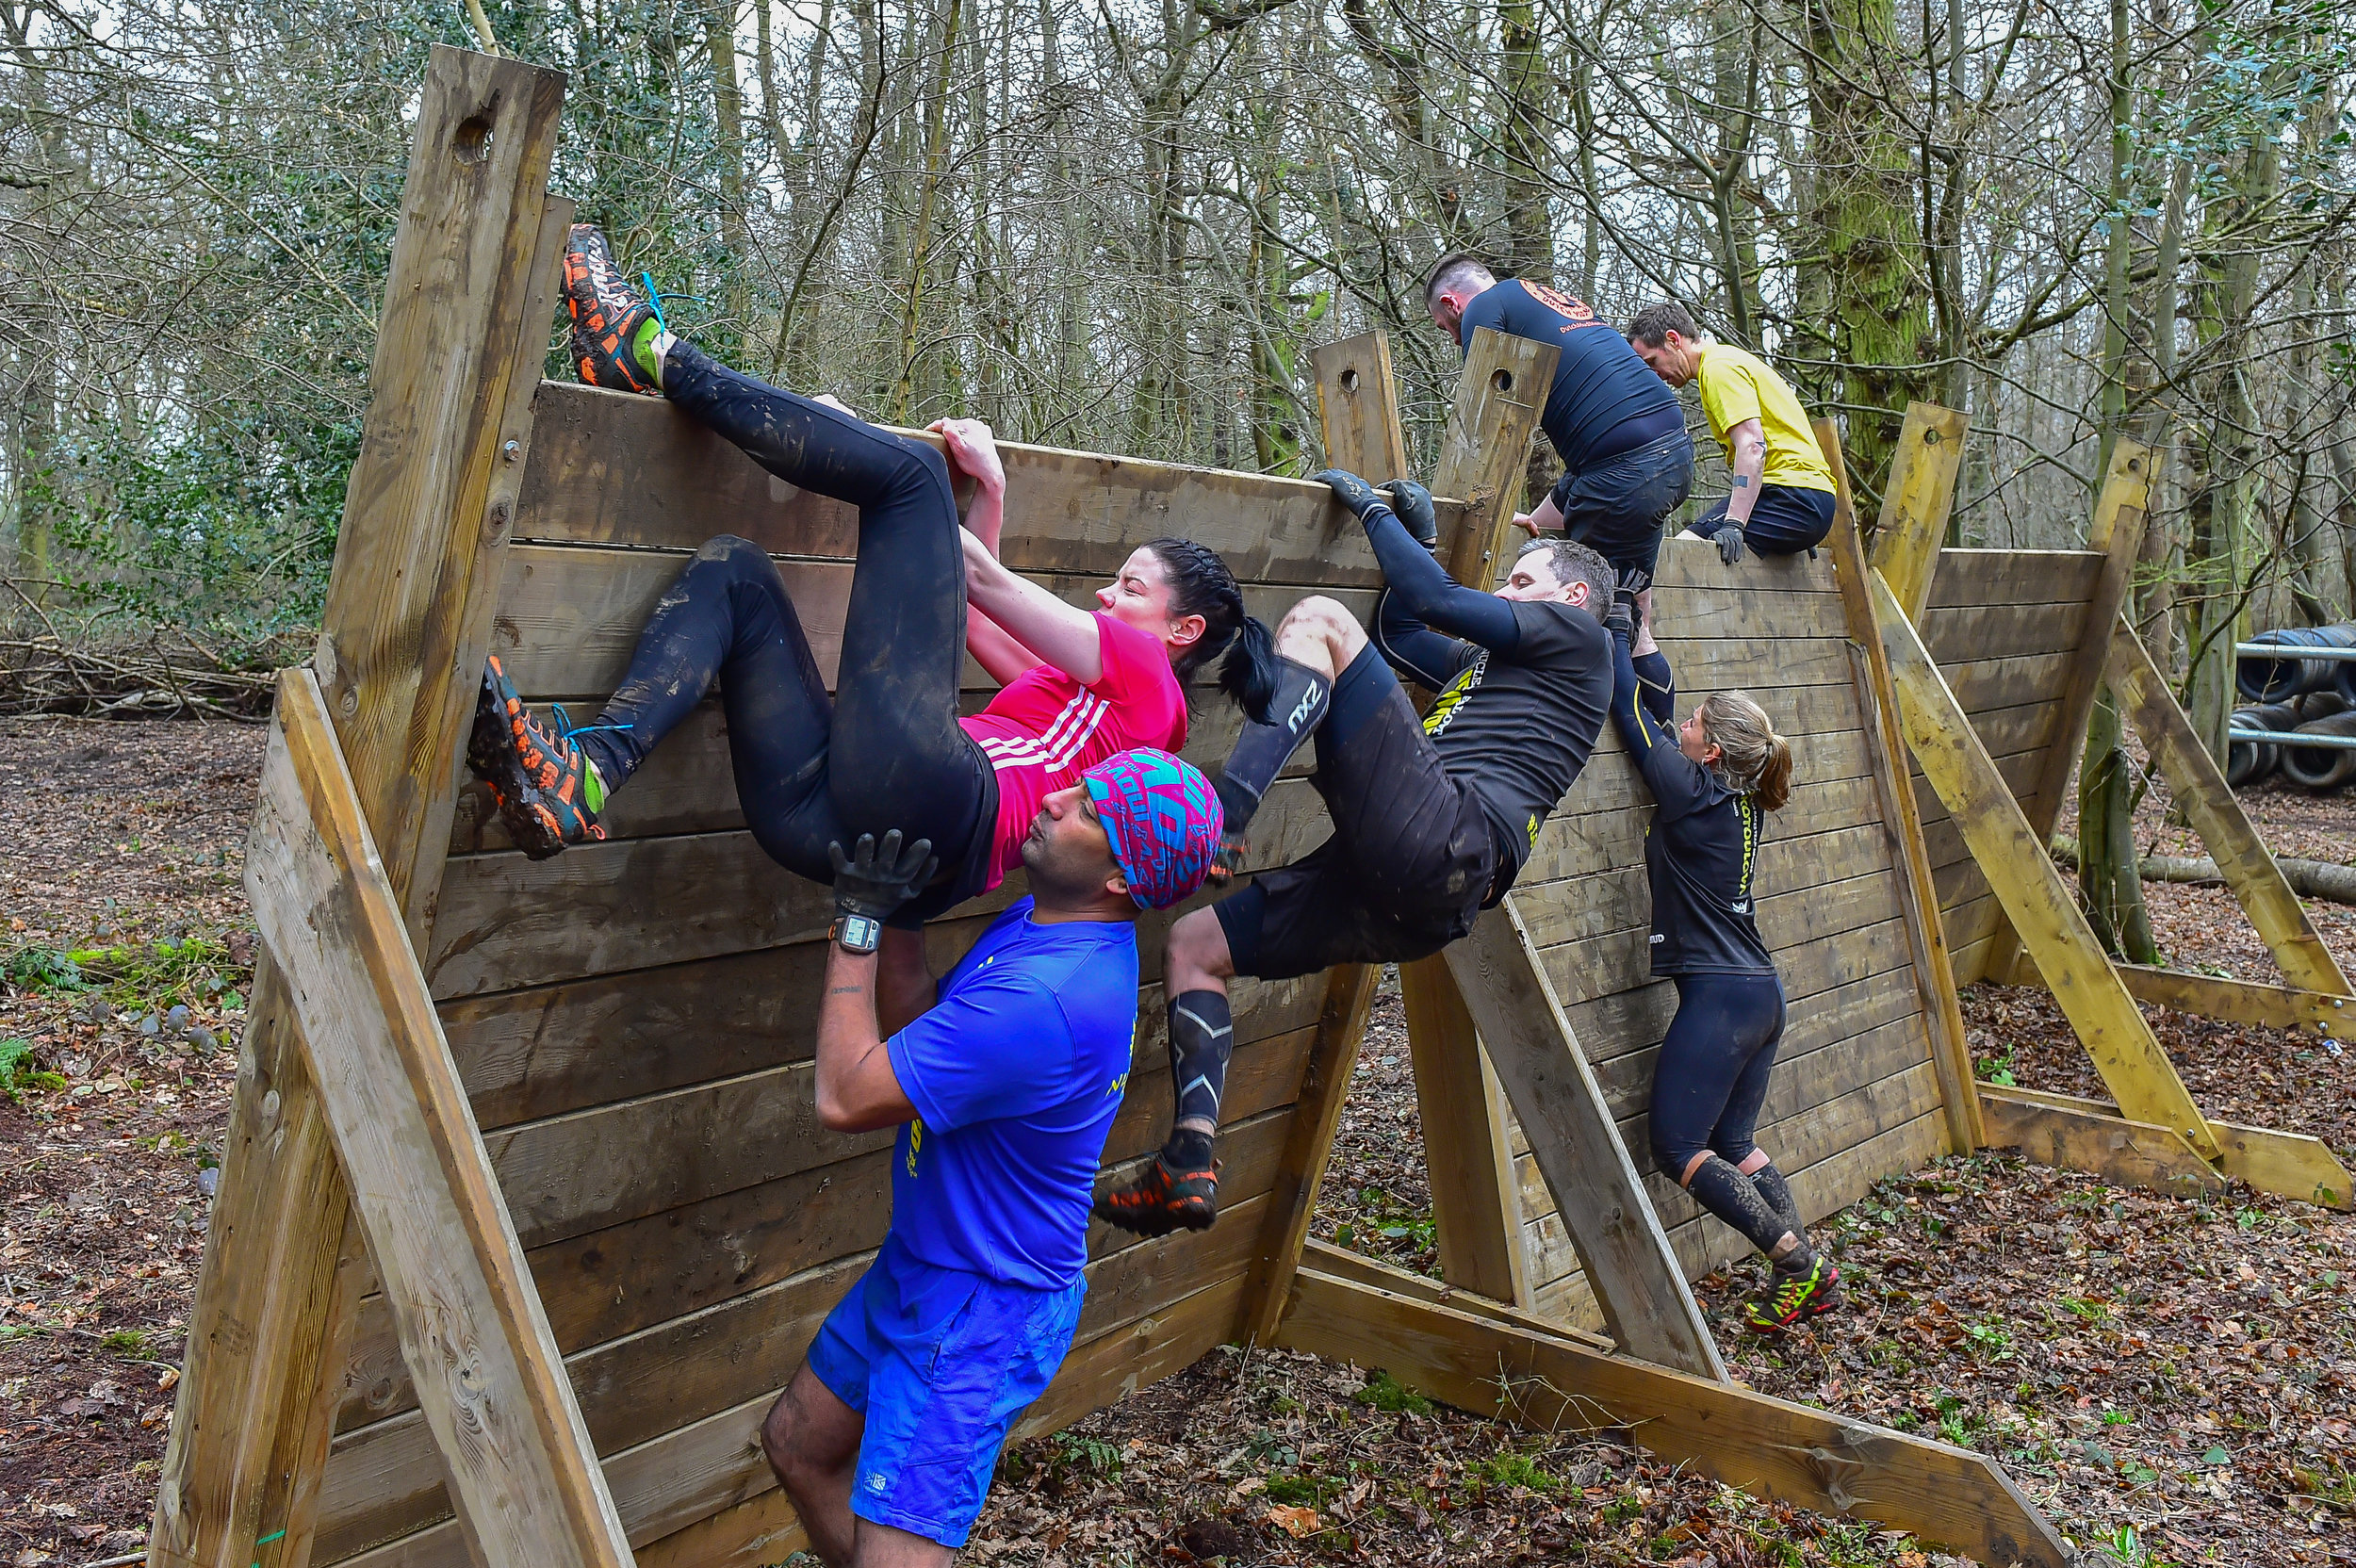 wild forest gym brentwood days out in essex things to do in essex fitness outdoors